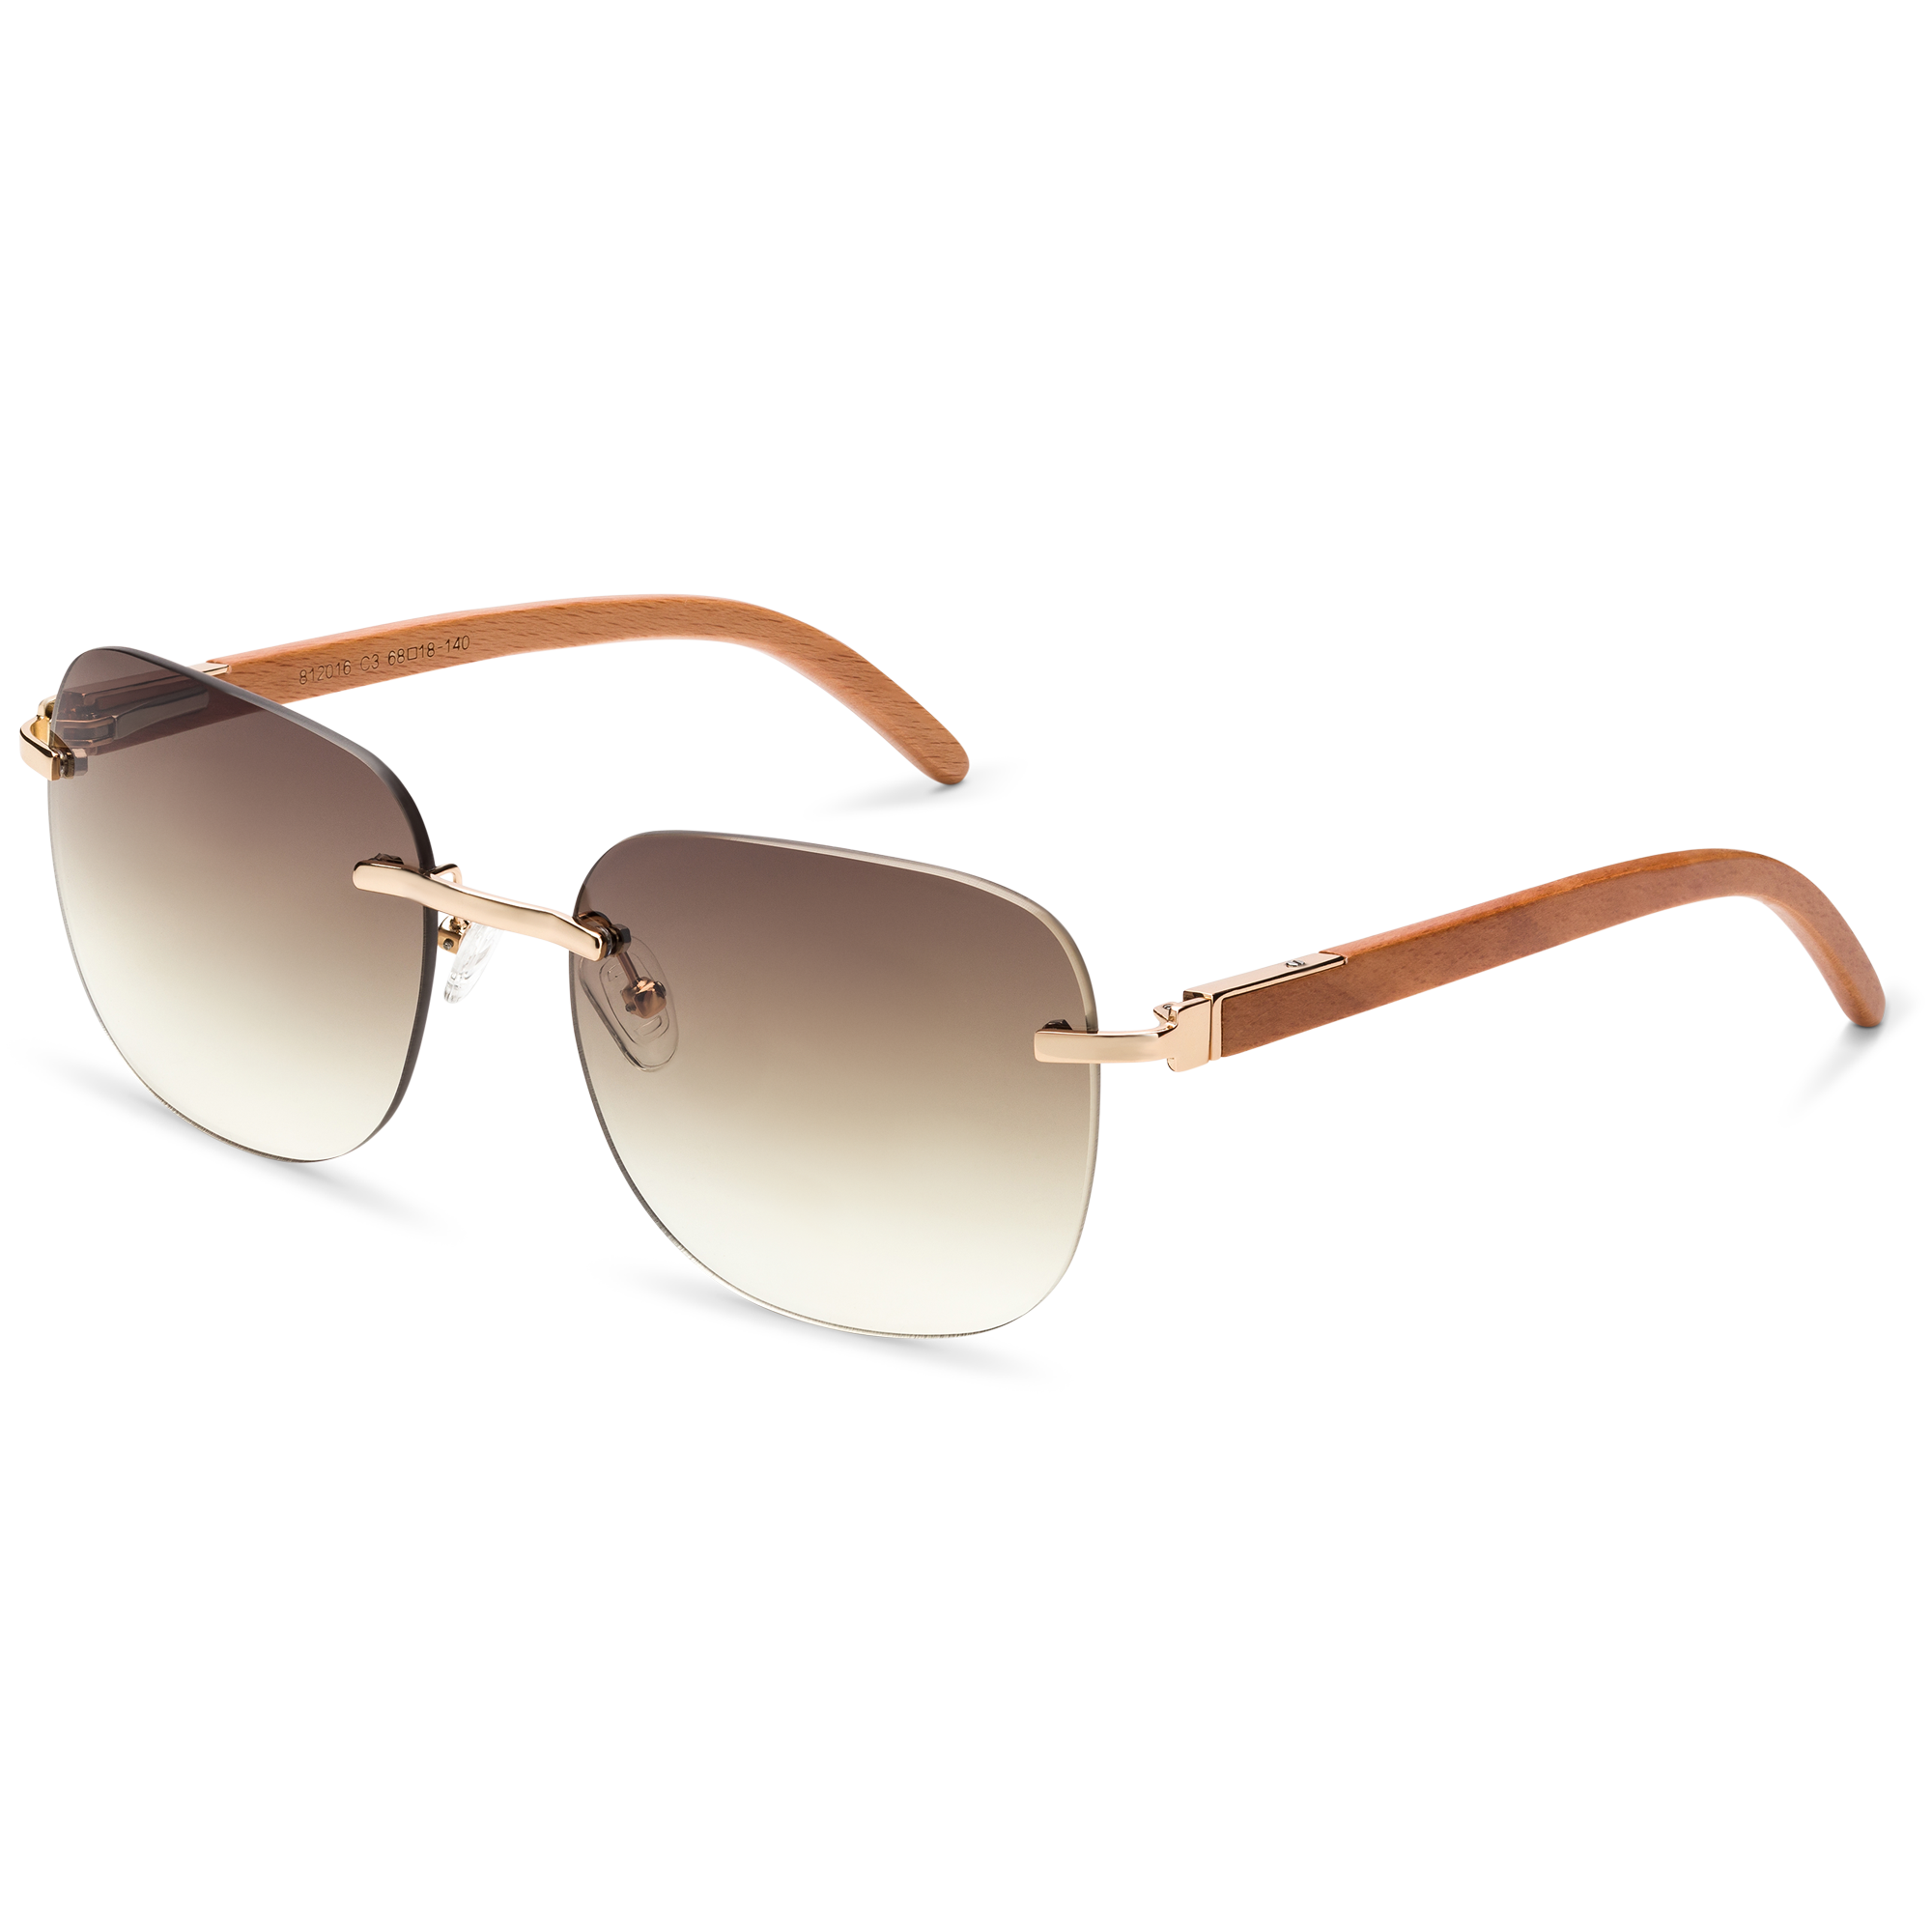 brown sunglasses product photography